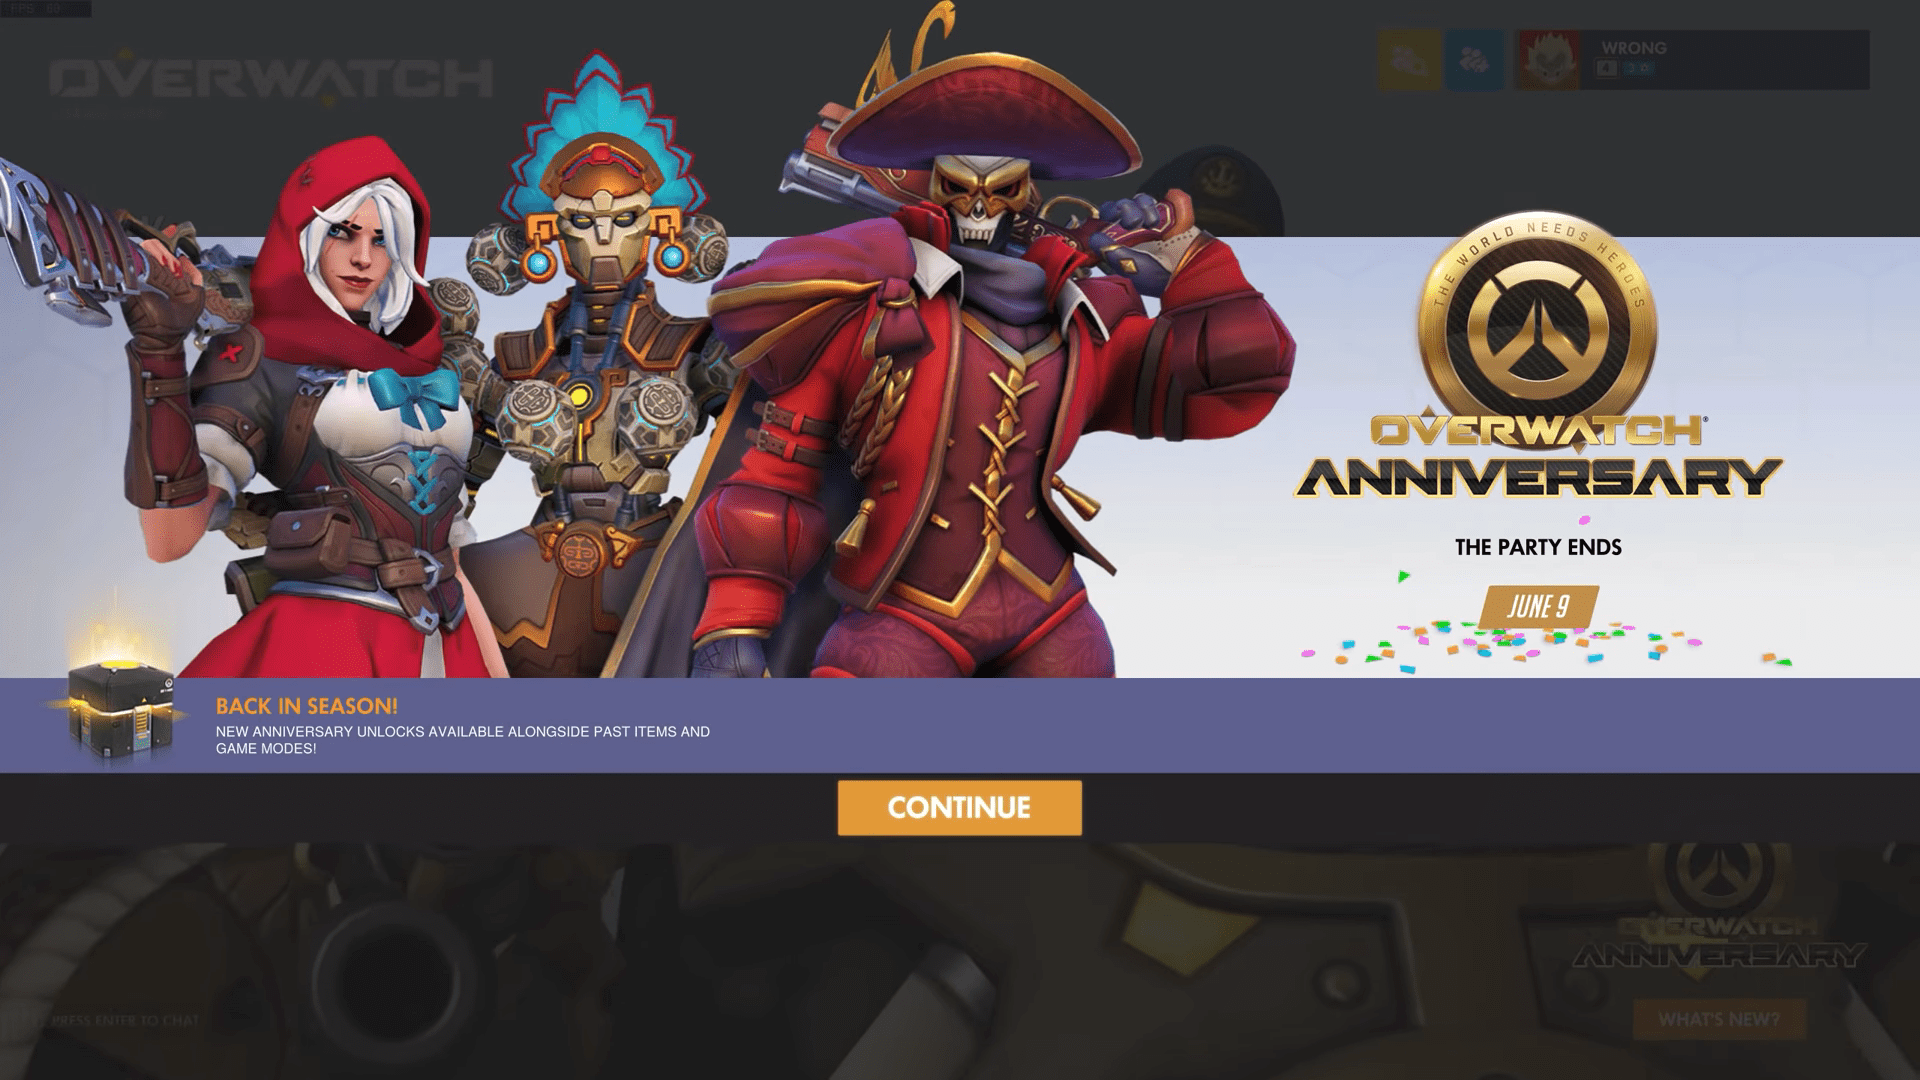 Overwatch 2020 Anniversary Patch Is Now Live: New Skins, Communication Wheel, And Hero Balance Changes Detailed